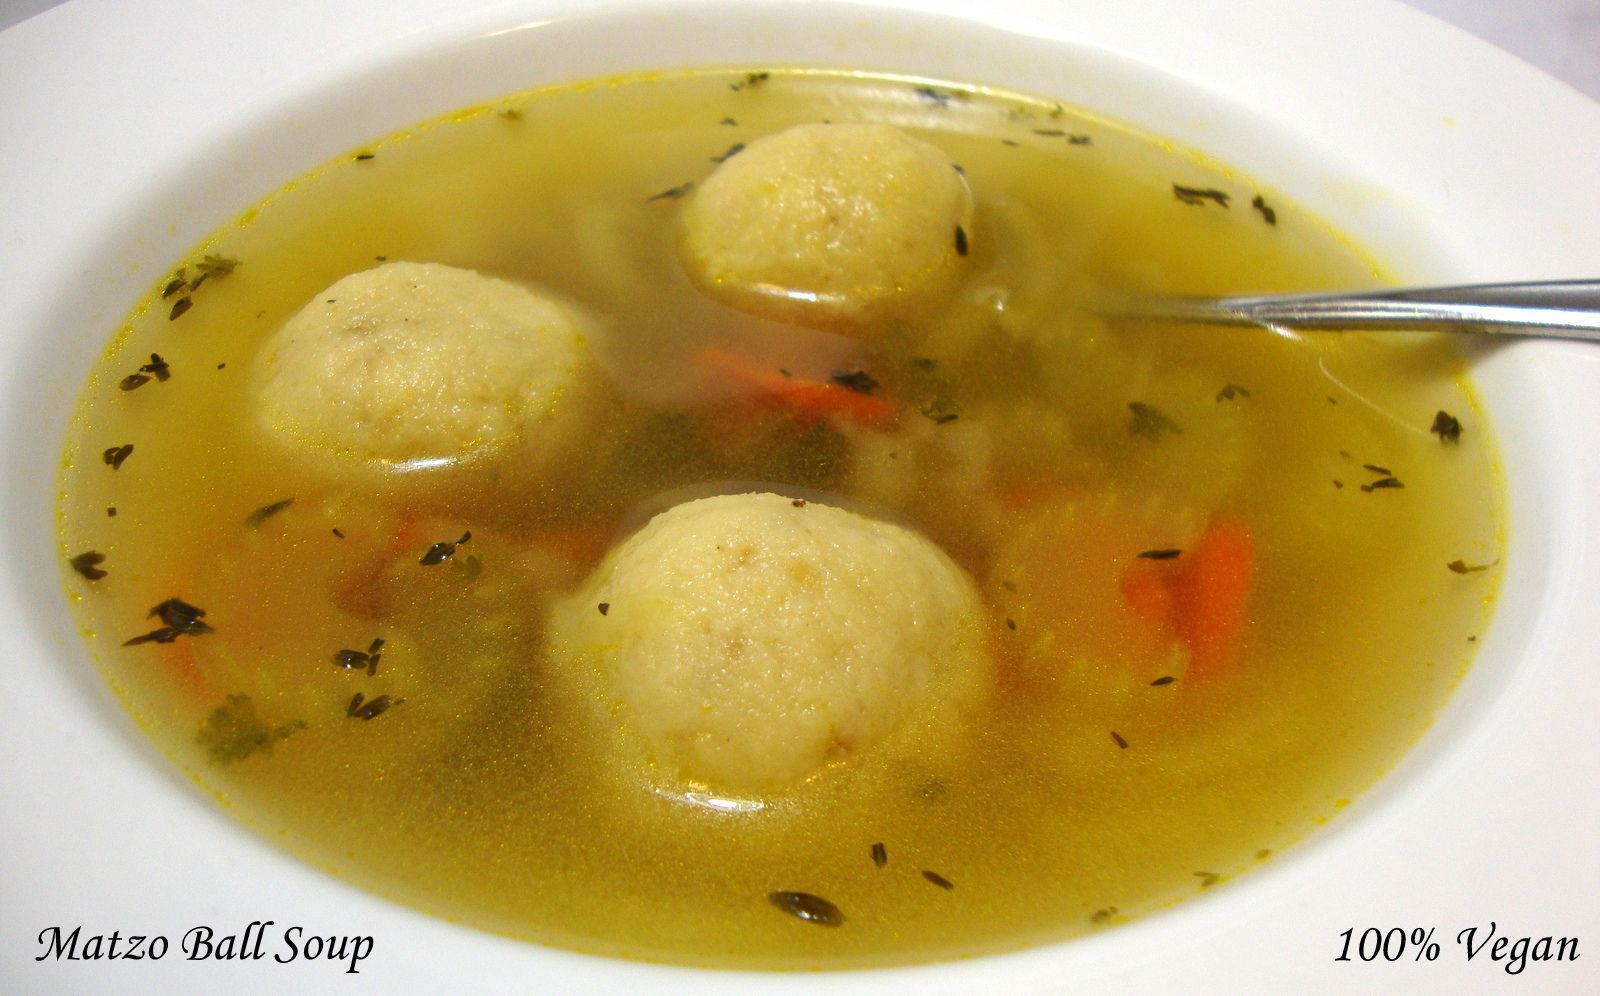 """Best Matzo Ball Soup: The matzo balls are served in a """"no-chicken"""" broth flavored with thyme, parsley and a mirepoix of carrots, celery and onions; simple and yet delicious. This recipe yields 6 medium-size matzo balls and about 1 quart of soup."""